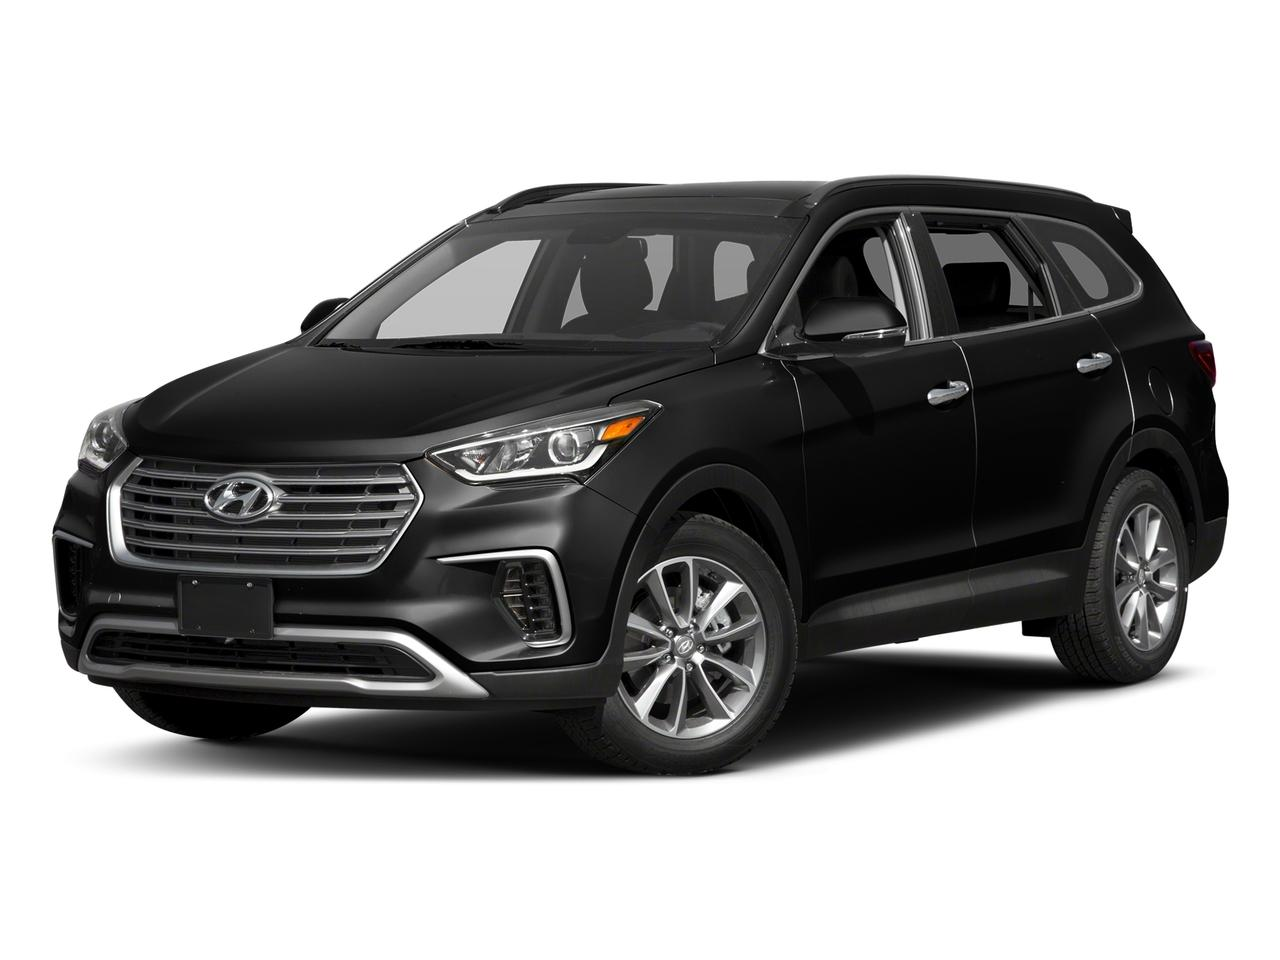 2018 Hyundai Santa Fe Vehicle Photo in Boonville, IN 47601